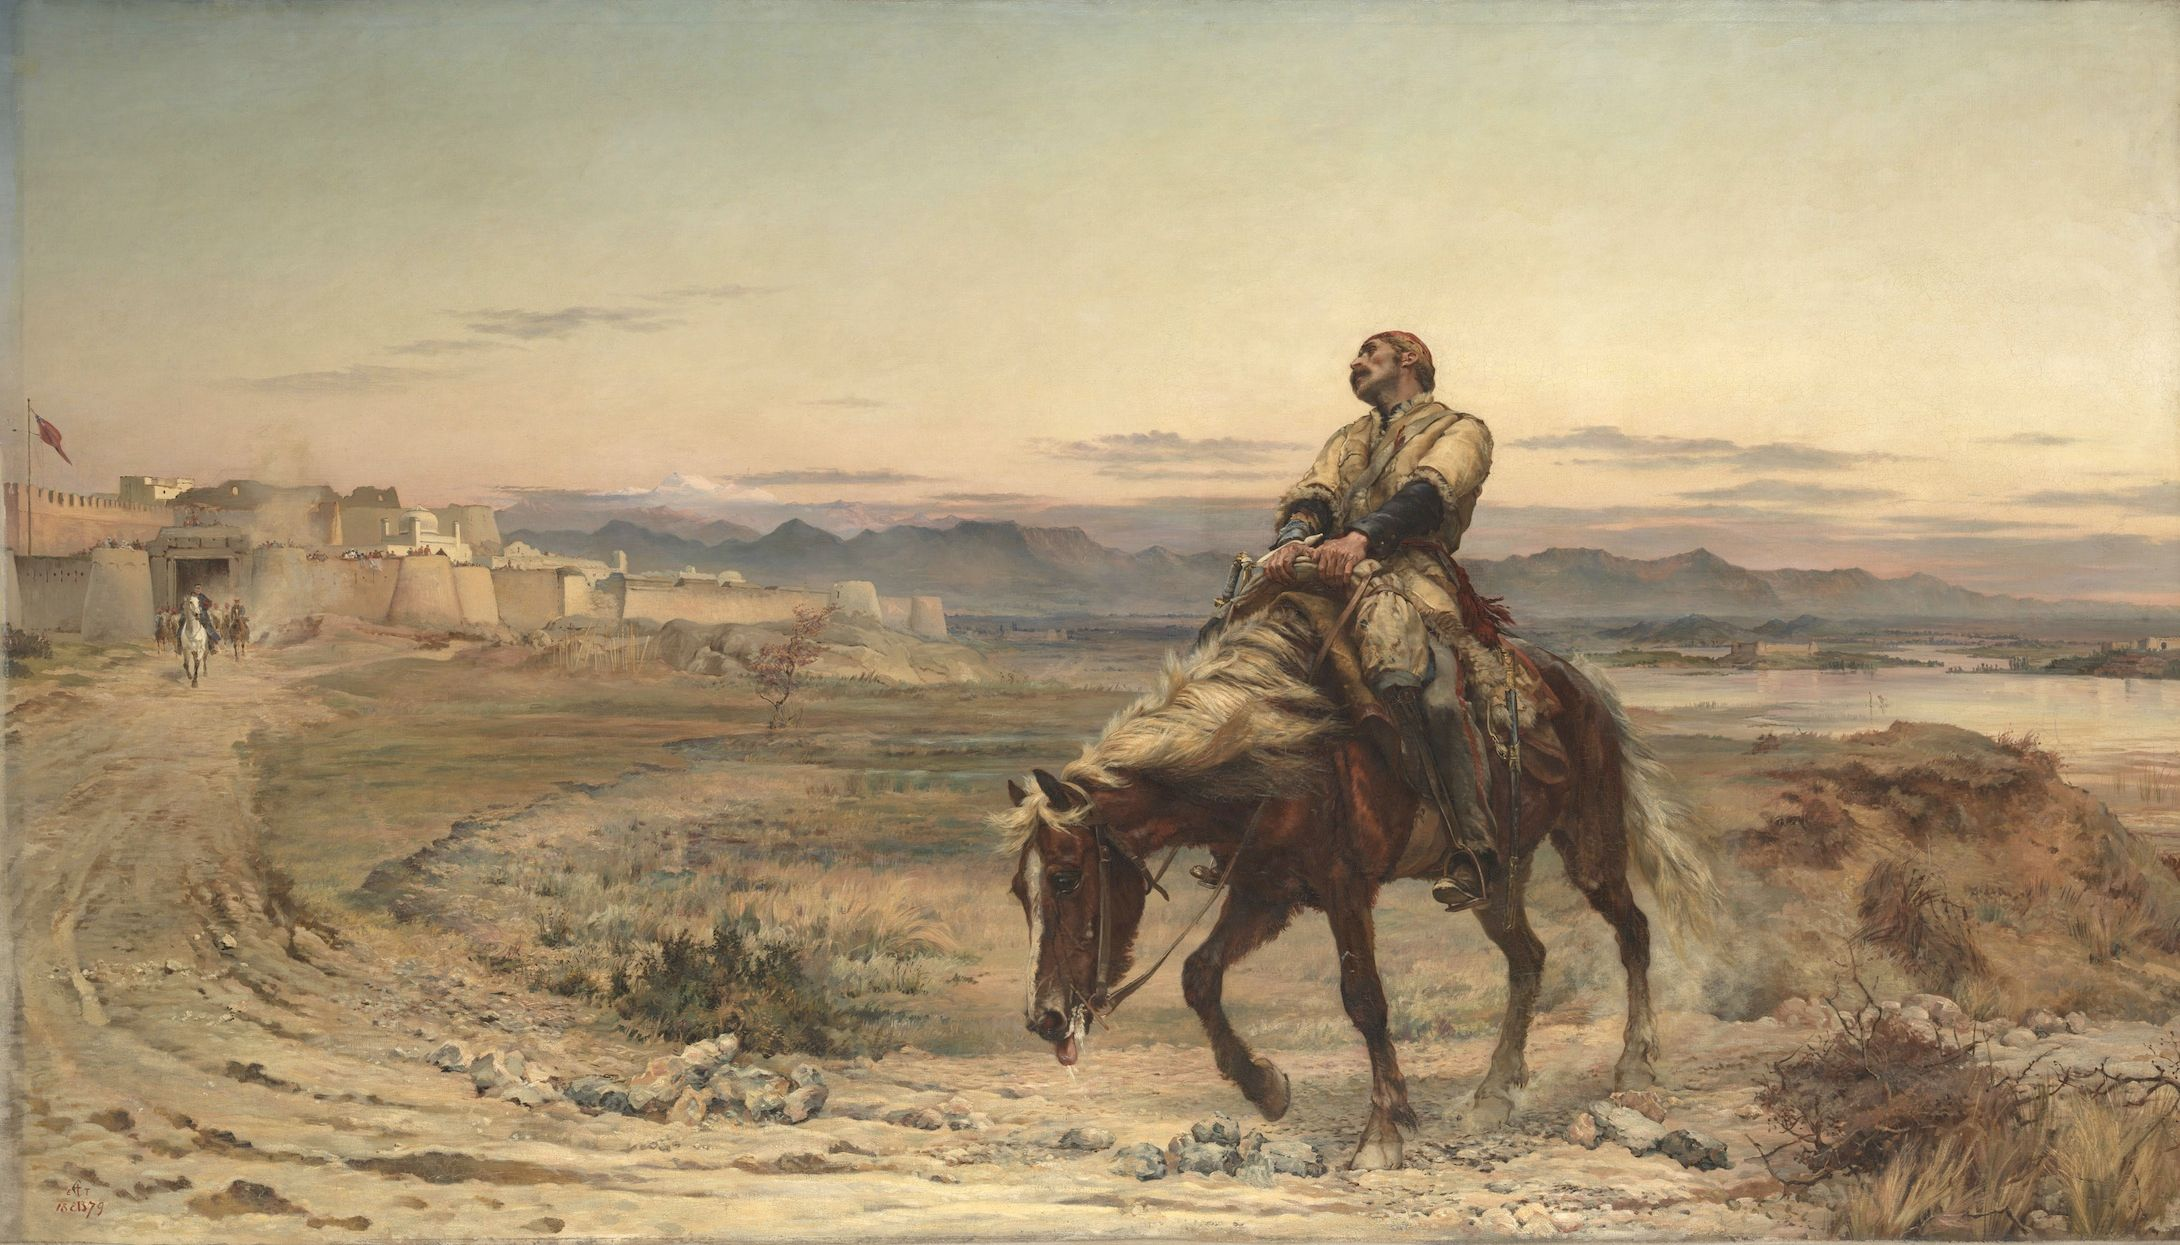 Romantic painting of an exhausted rider returning to a desert city